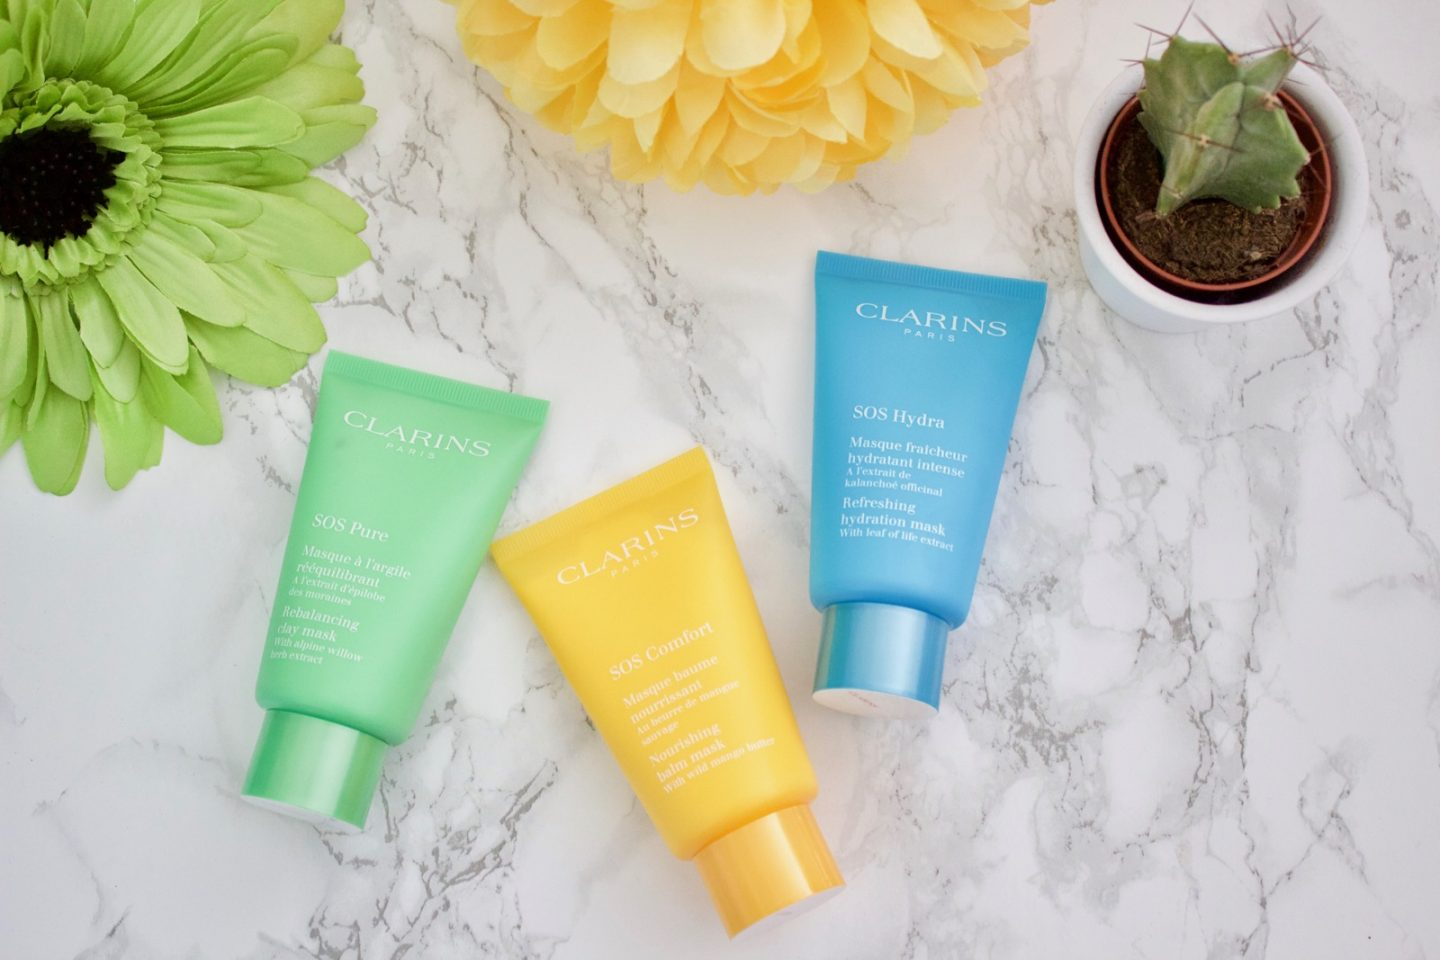 Clarins SOS Face Masks